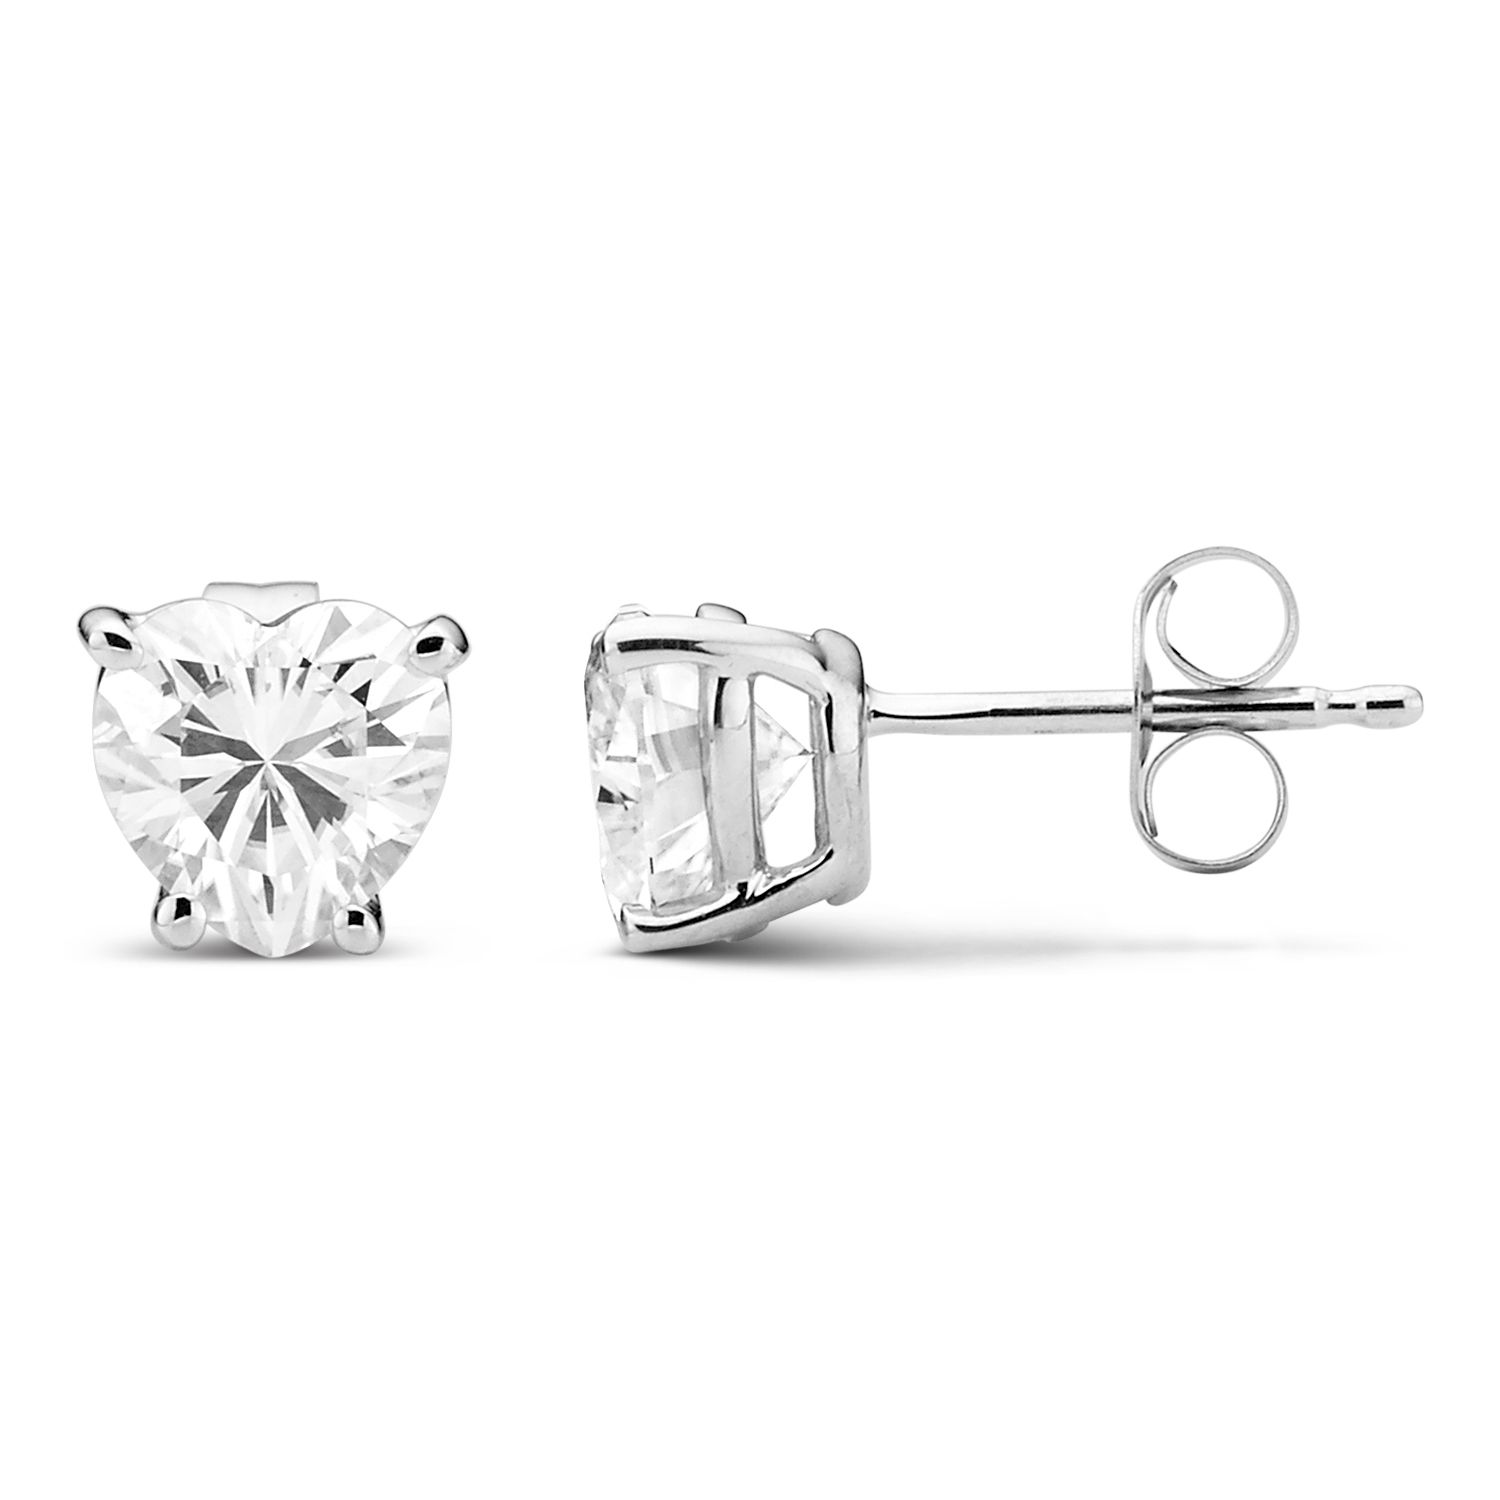 studs moissanite dsc in carat gold total stud brilliant weight ct white twt set earrings tb